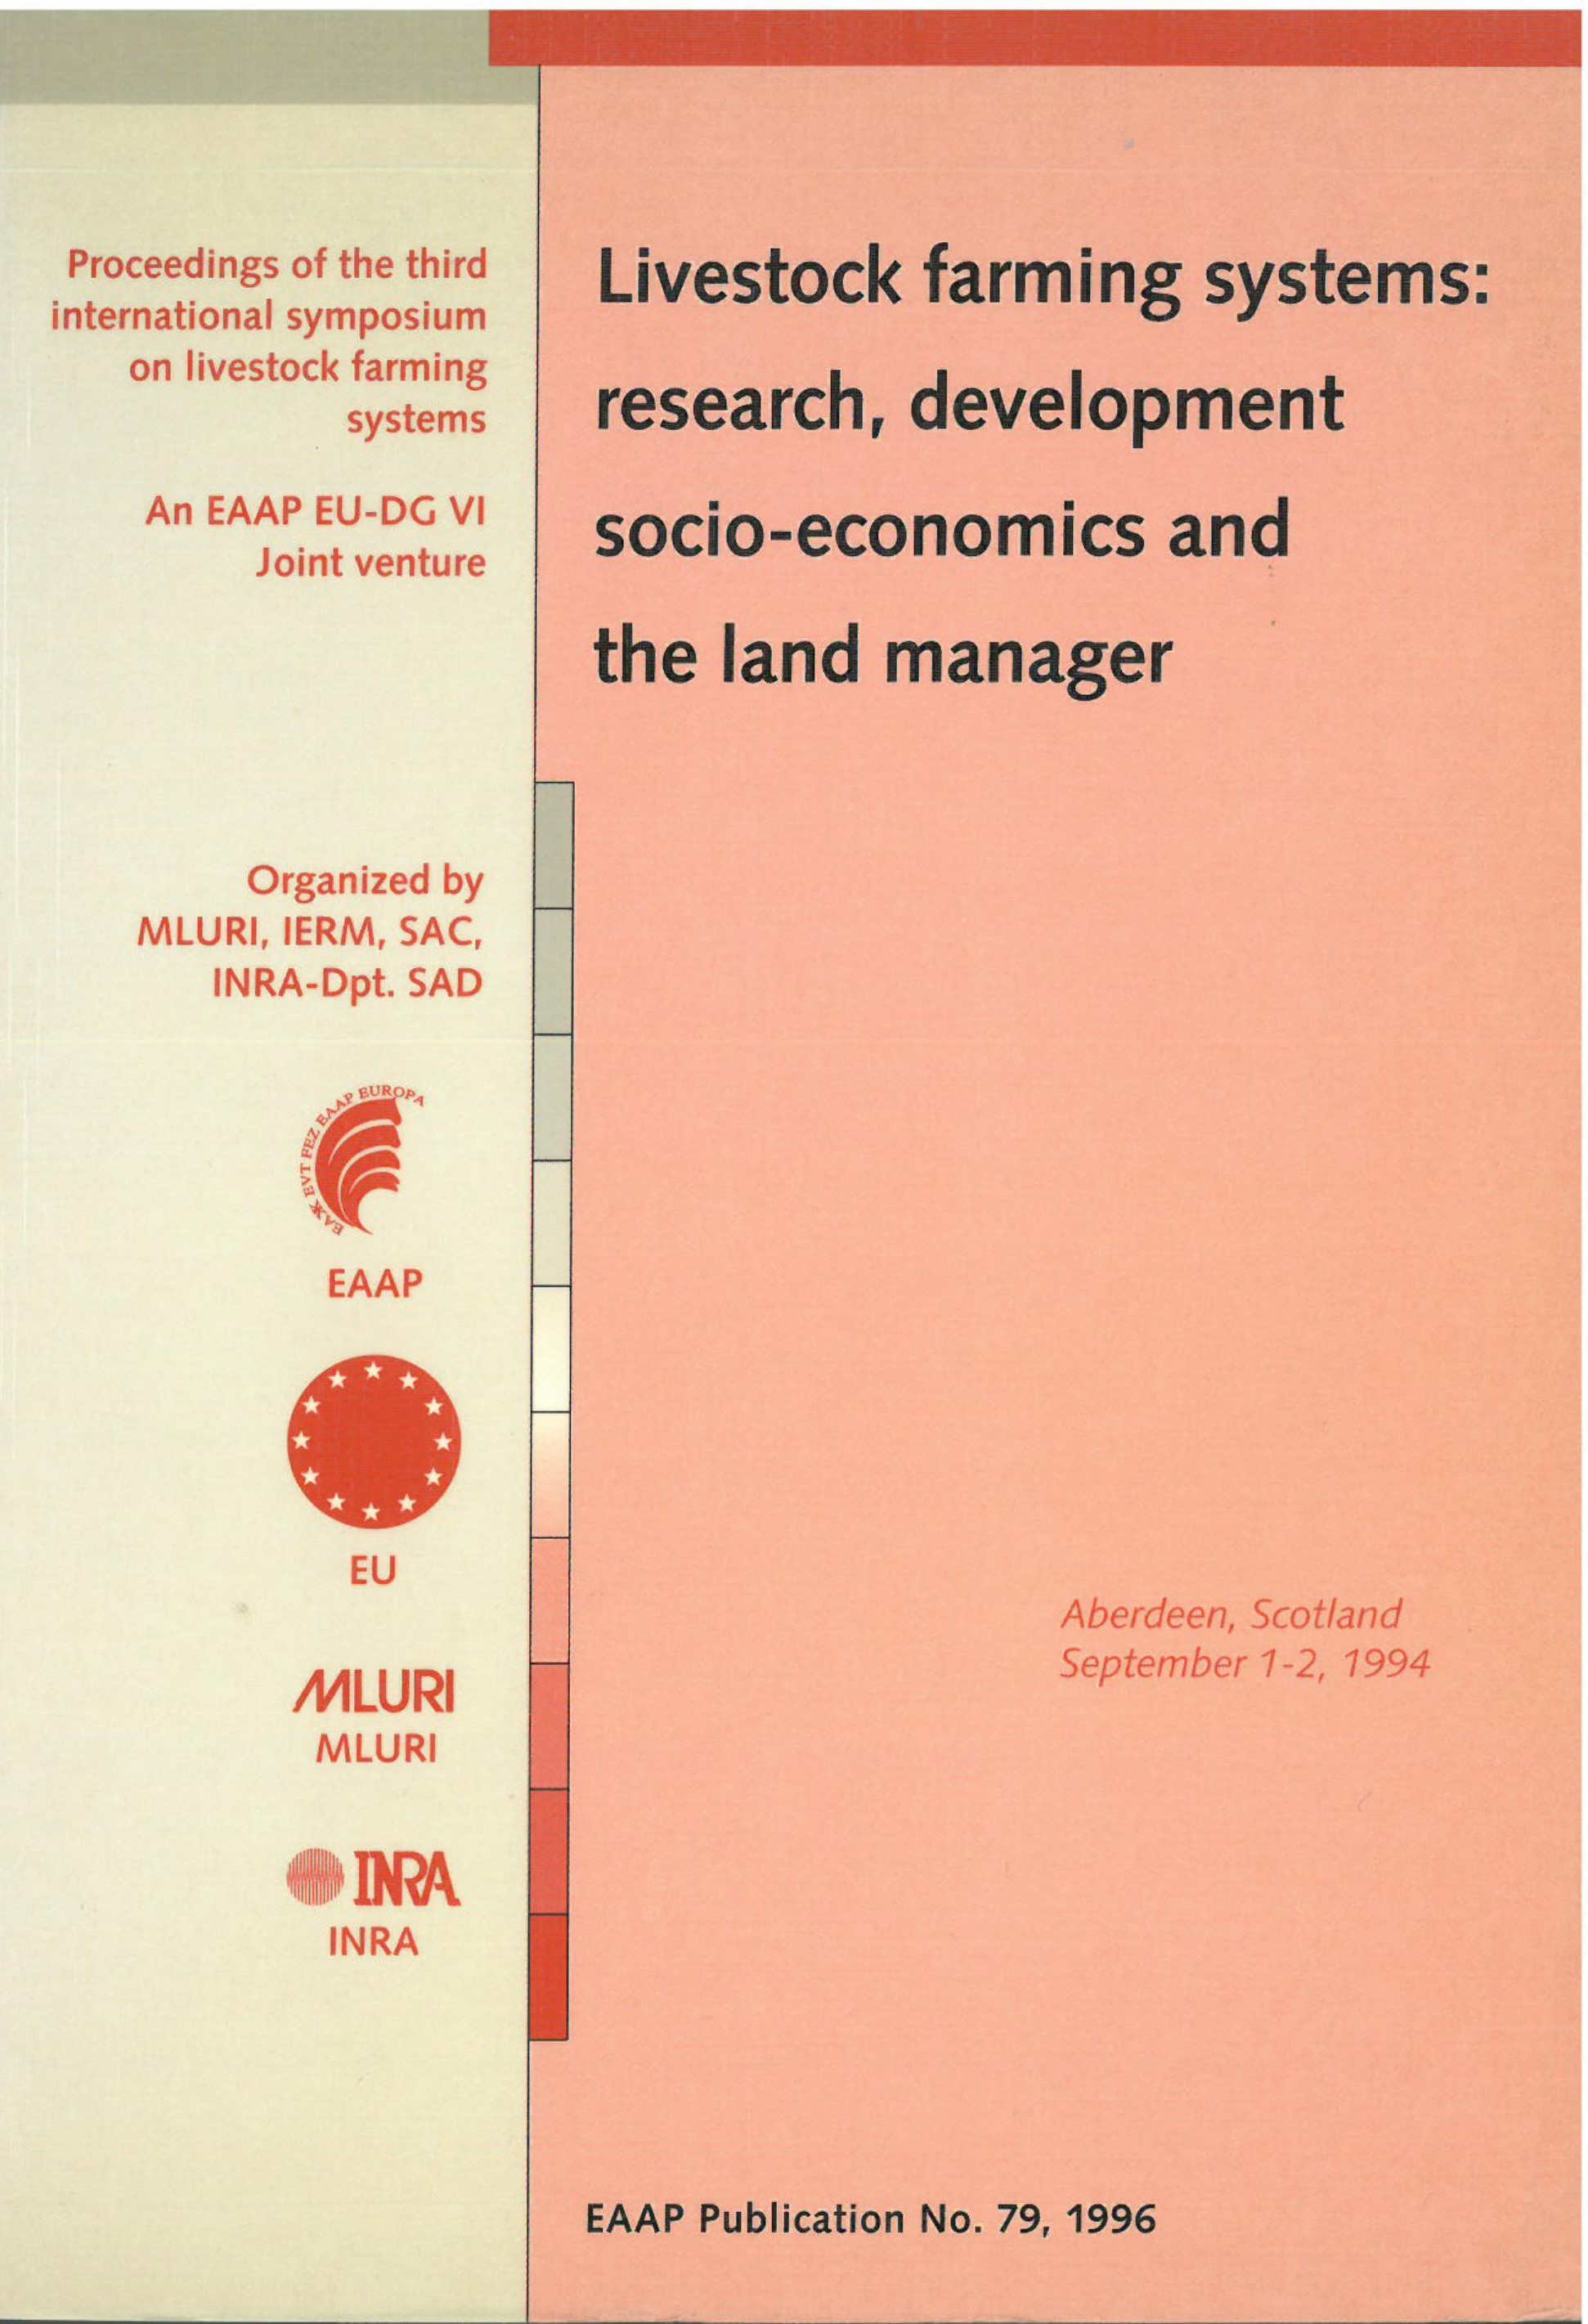 Livestock farming systems: research, development socio-economics and the land manager